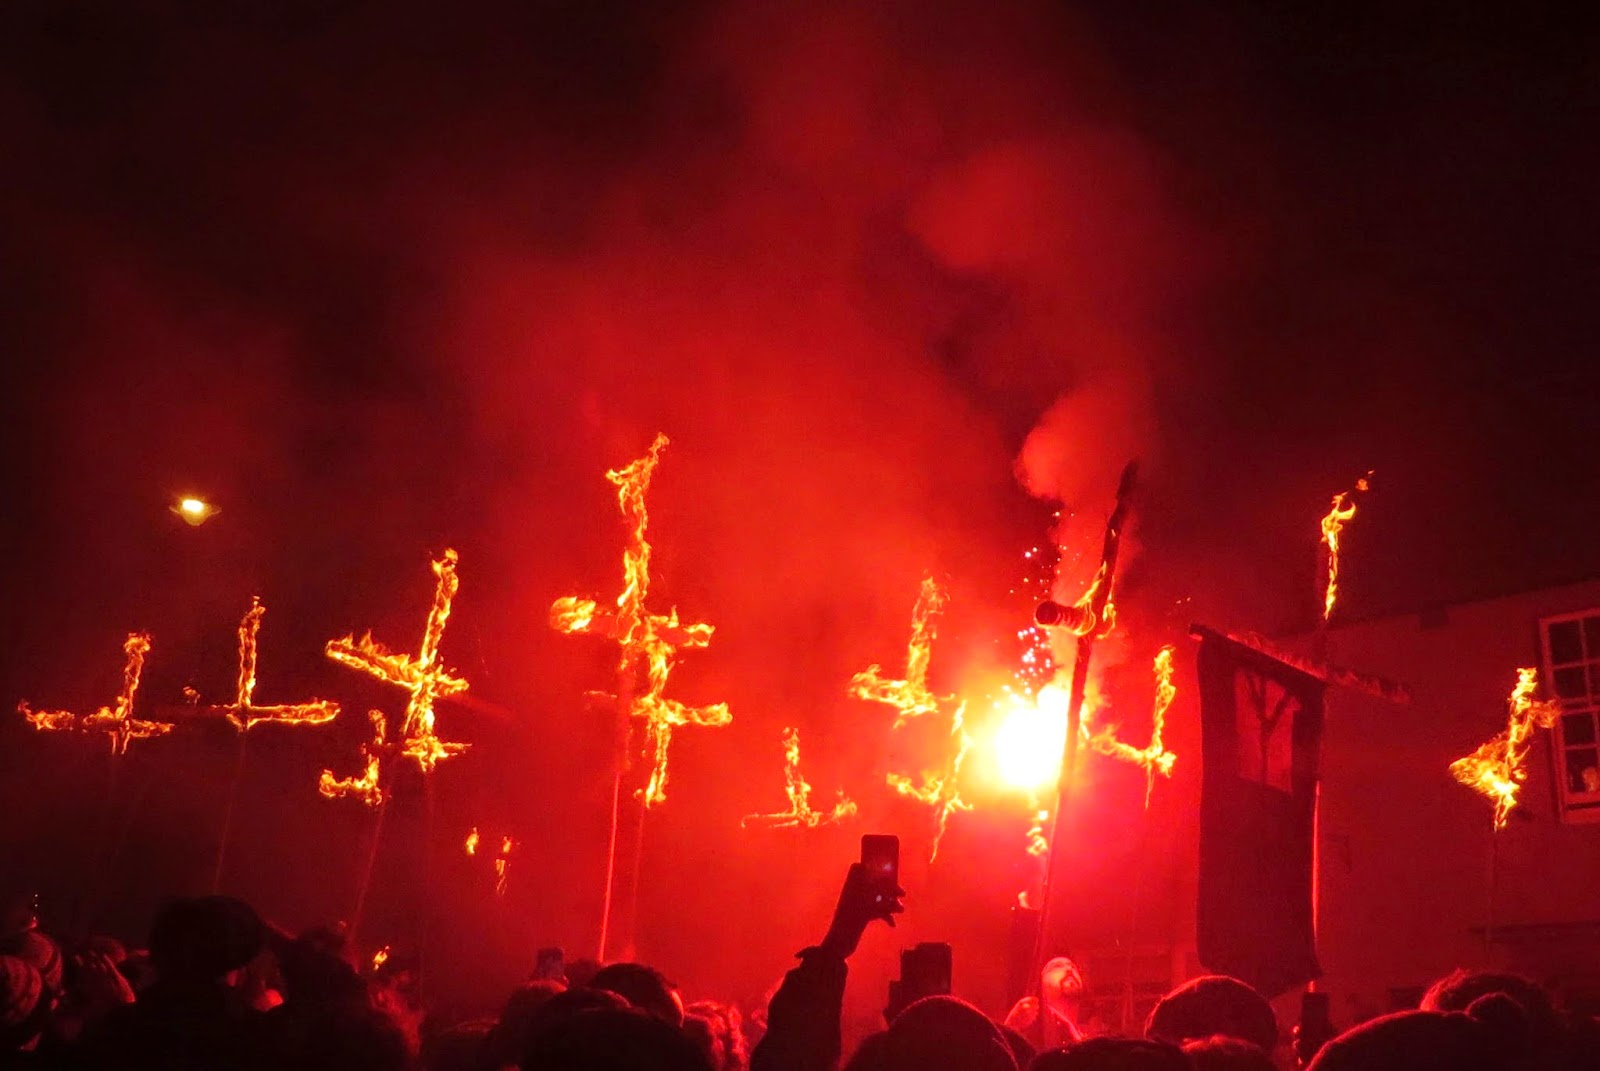 Lewes bonfire night, lewes bonfire procession, the fifth, 5th november, Guy Fawkes night, fire, torches, Lewes, Sussex, flaming torch, must do, Lewes burning crosses,